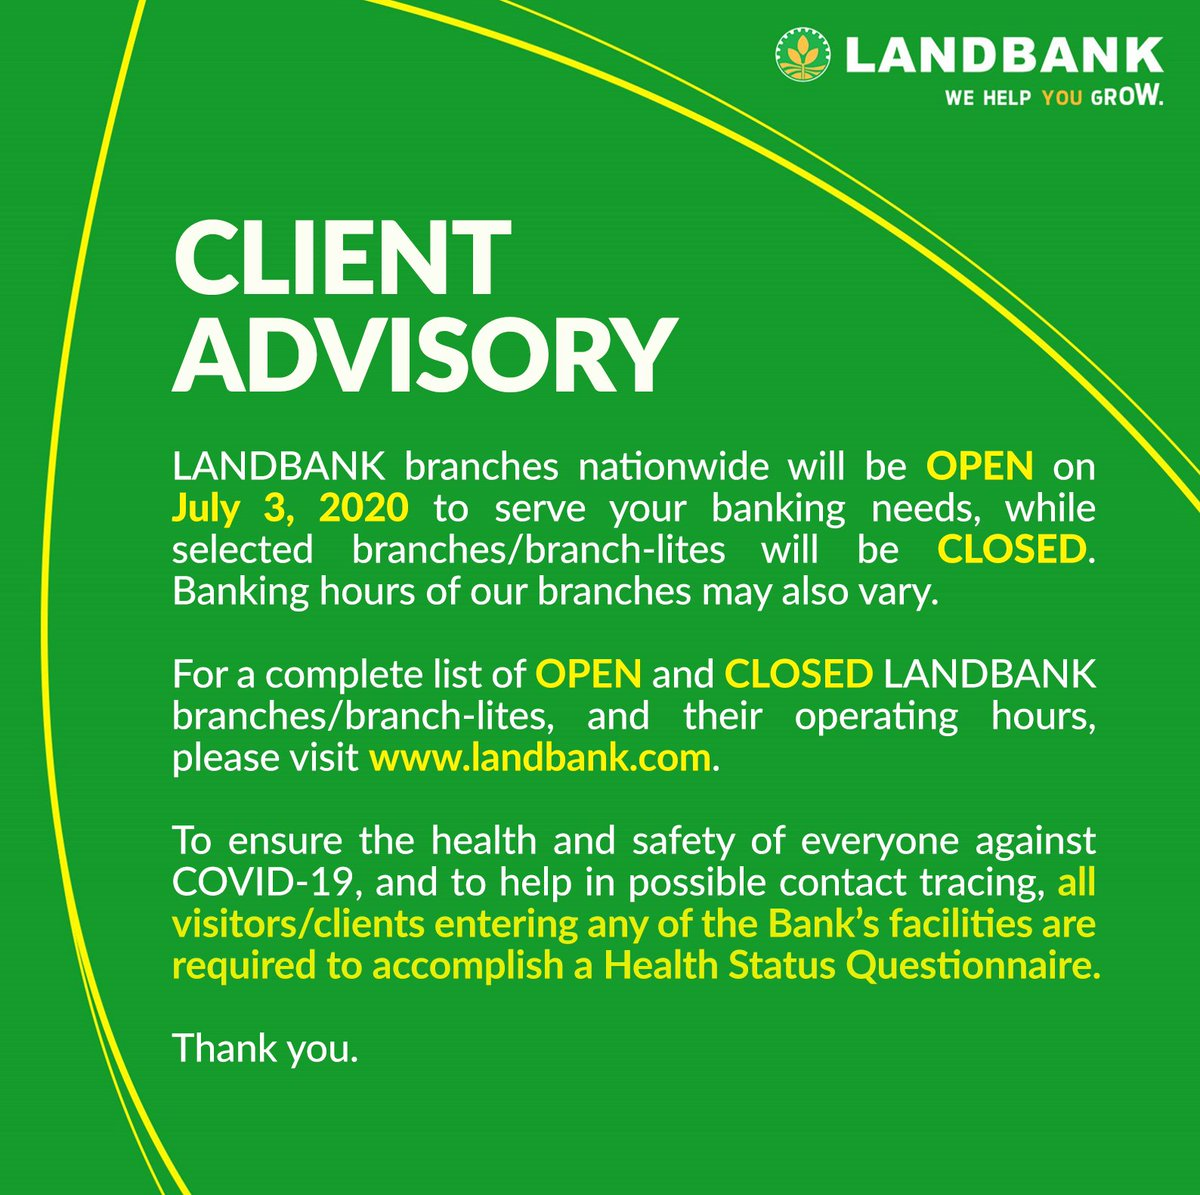 #LANDBANKClientAdvisory  To see the full list of OPEN branches, visit https://t.co/ecU5UBjSs2  To see the full list of CLOSED branches, visit https://t.co/k9xyEq8zv6 https://t.co/GArUxS3VOY